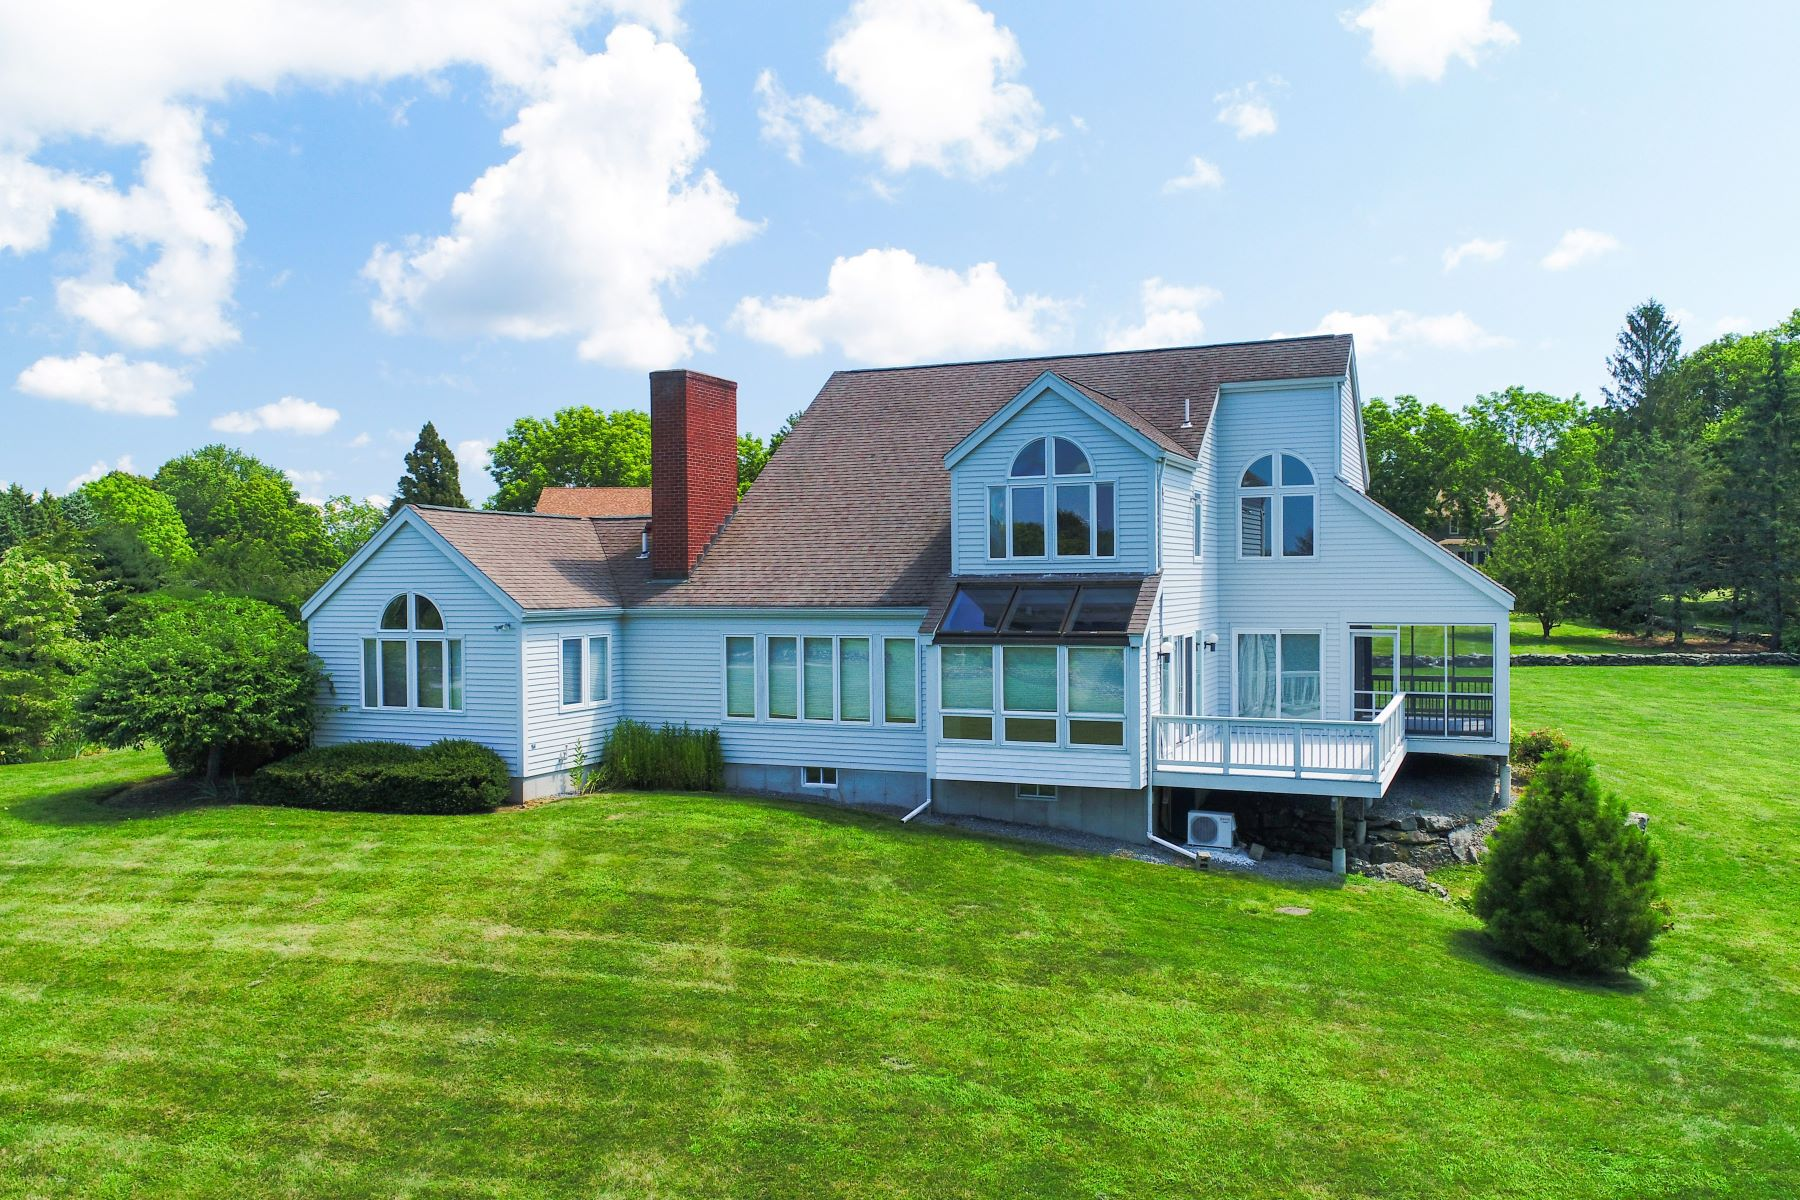 Single Family Homes for Sale at 67 Riverscape Lane, Tiverton, RI 67 Riverscape Lane Tiverton, Rhode Island 02878 United States